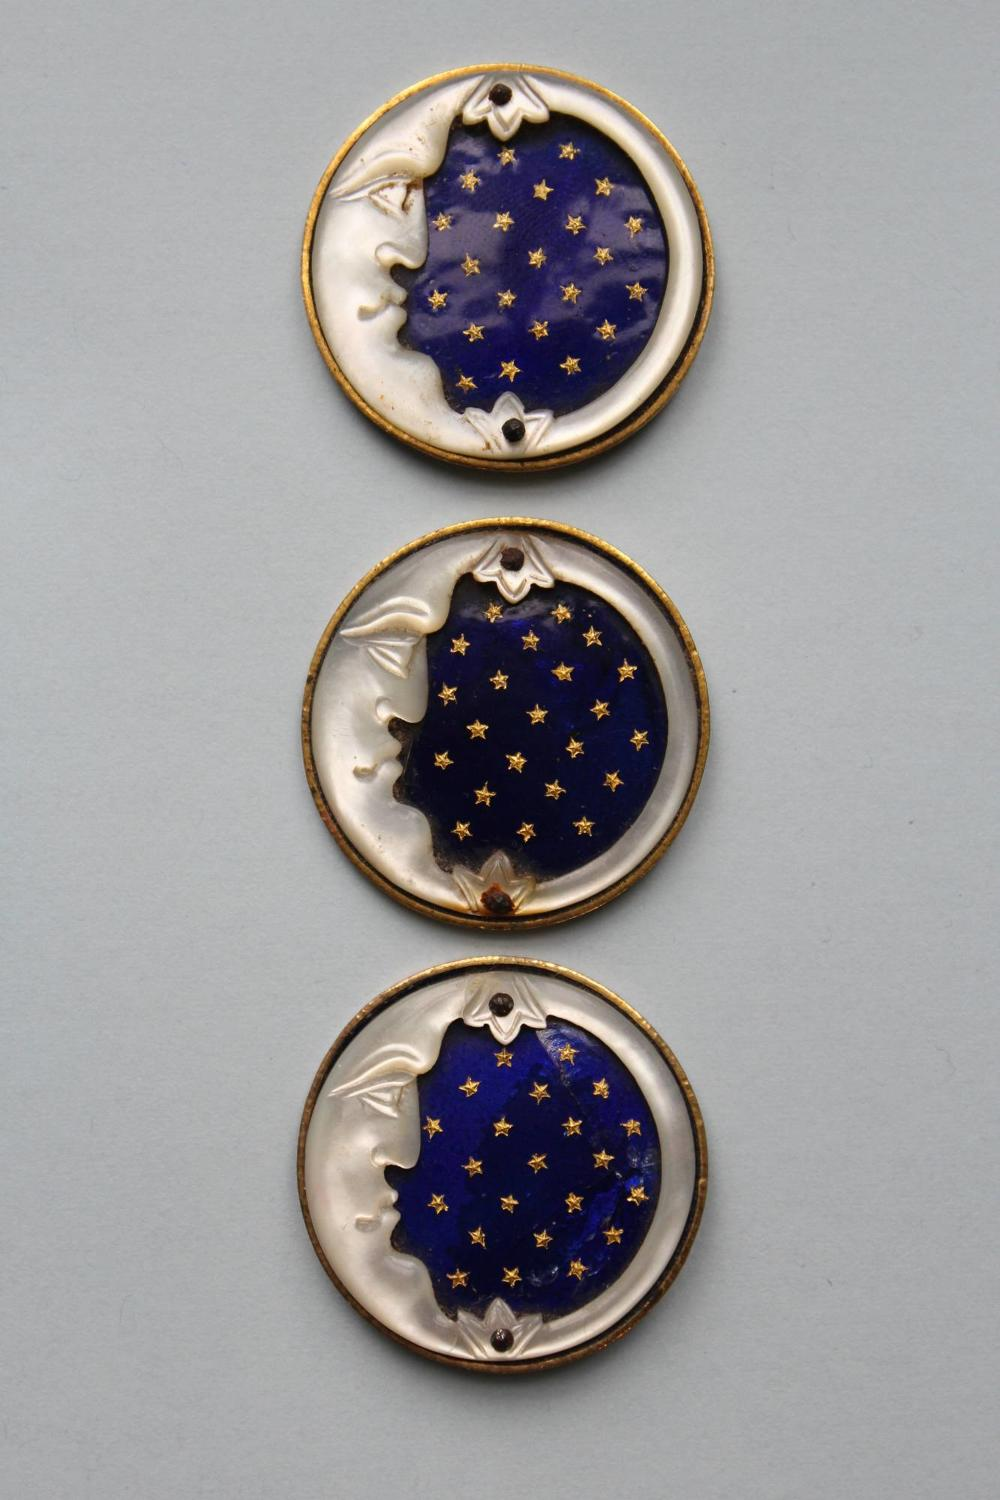 French Mother of Pearl & Enamel Buttons